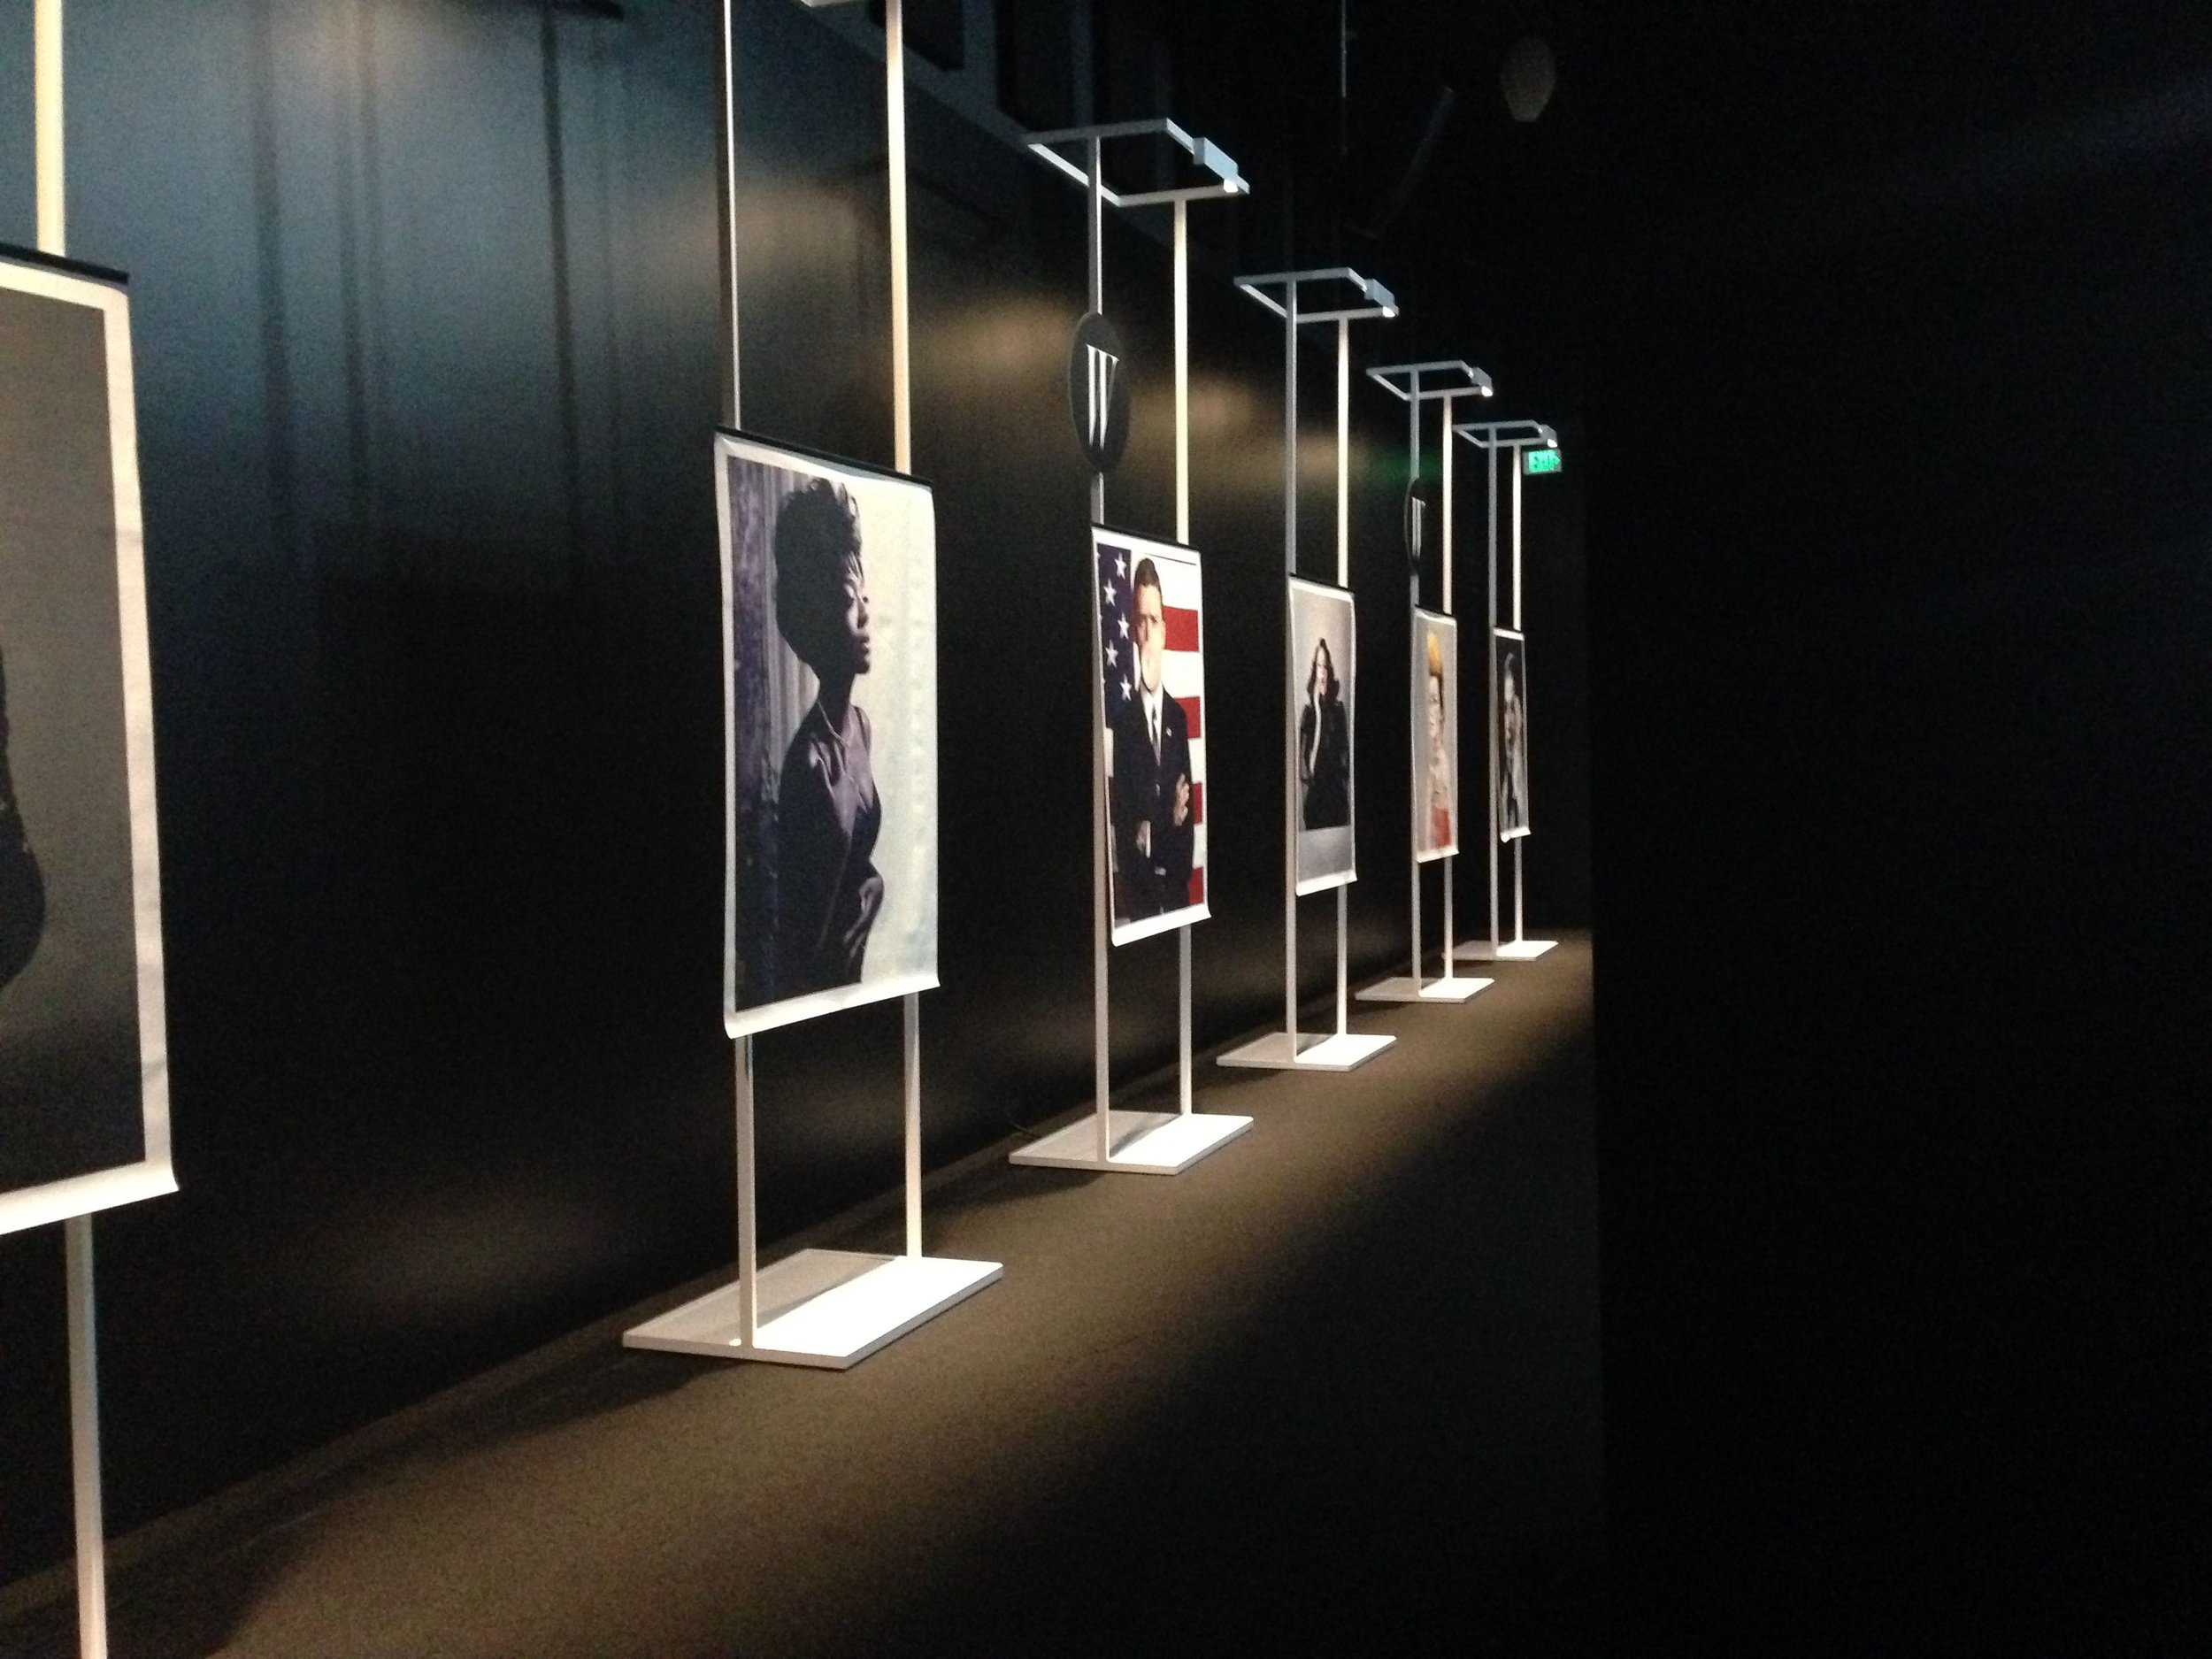 """W Magazine """"Shooting Stars"""" Installation at the LACMA museum featuring the work of photographers Steven Klein, Juergen Teller, Tim Walker and Mario Sorrenti."""